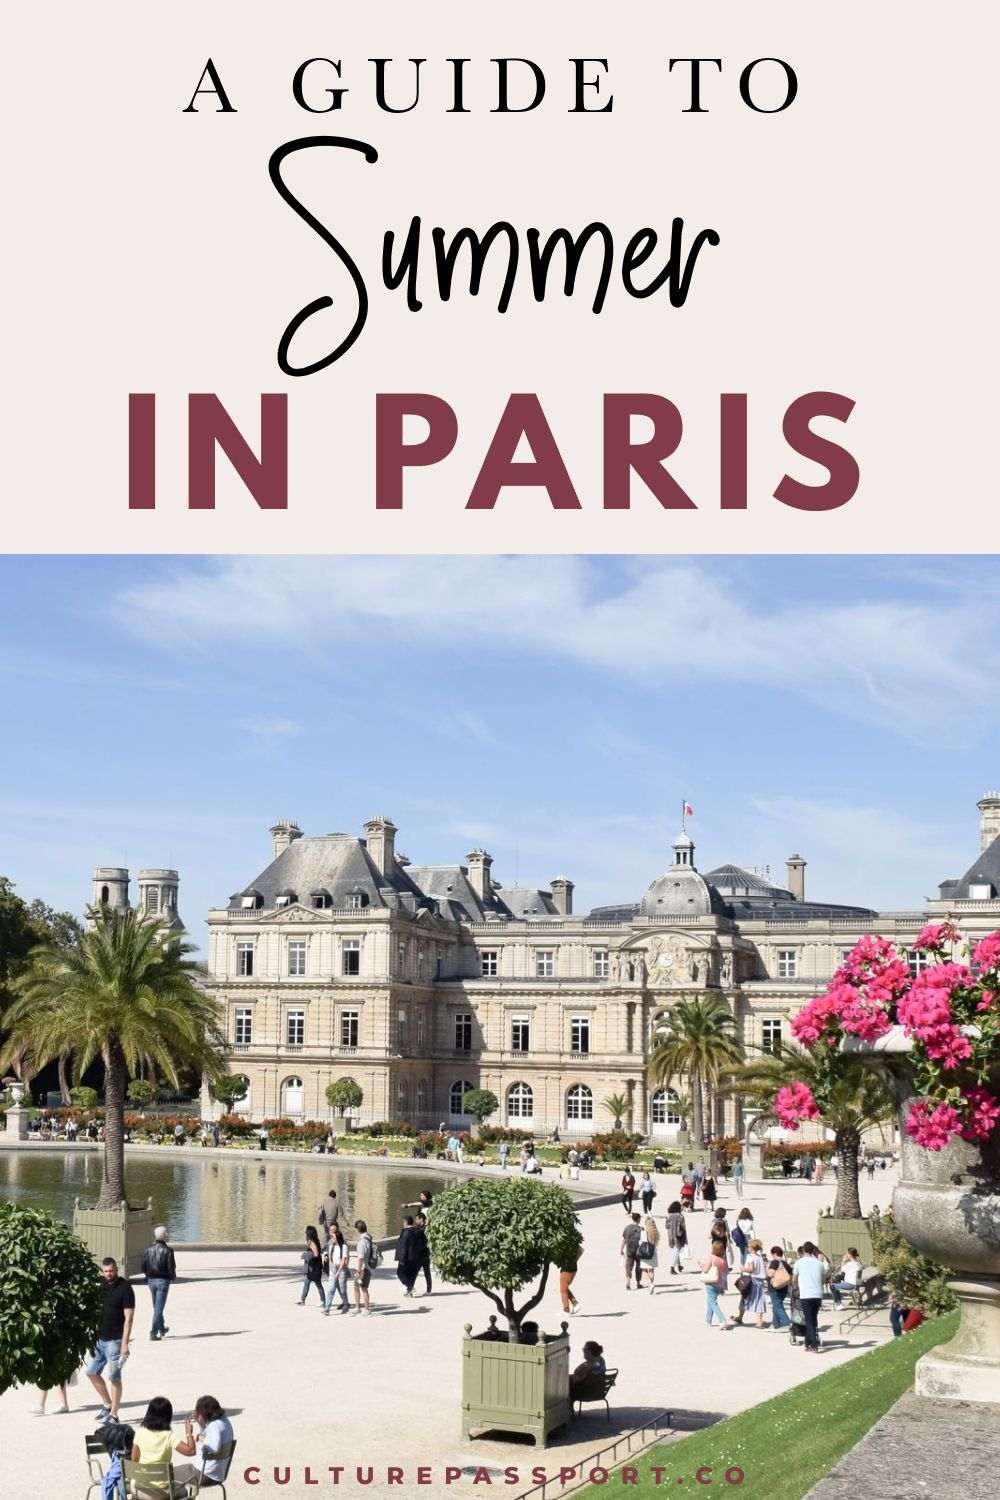 A Guide to Summer in Paris – The Ultimate Guide to Visiting Paris in Summer with what to do, where to go, things to do, and places to see! #parisguide